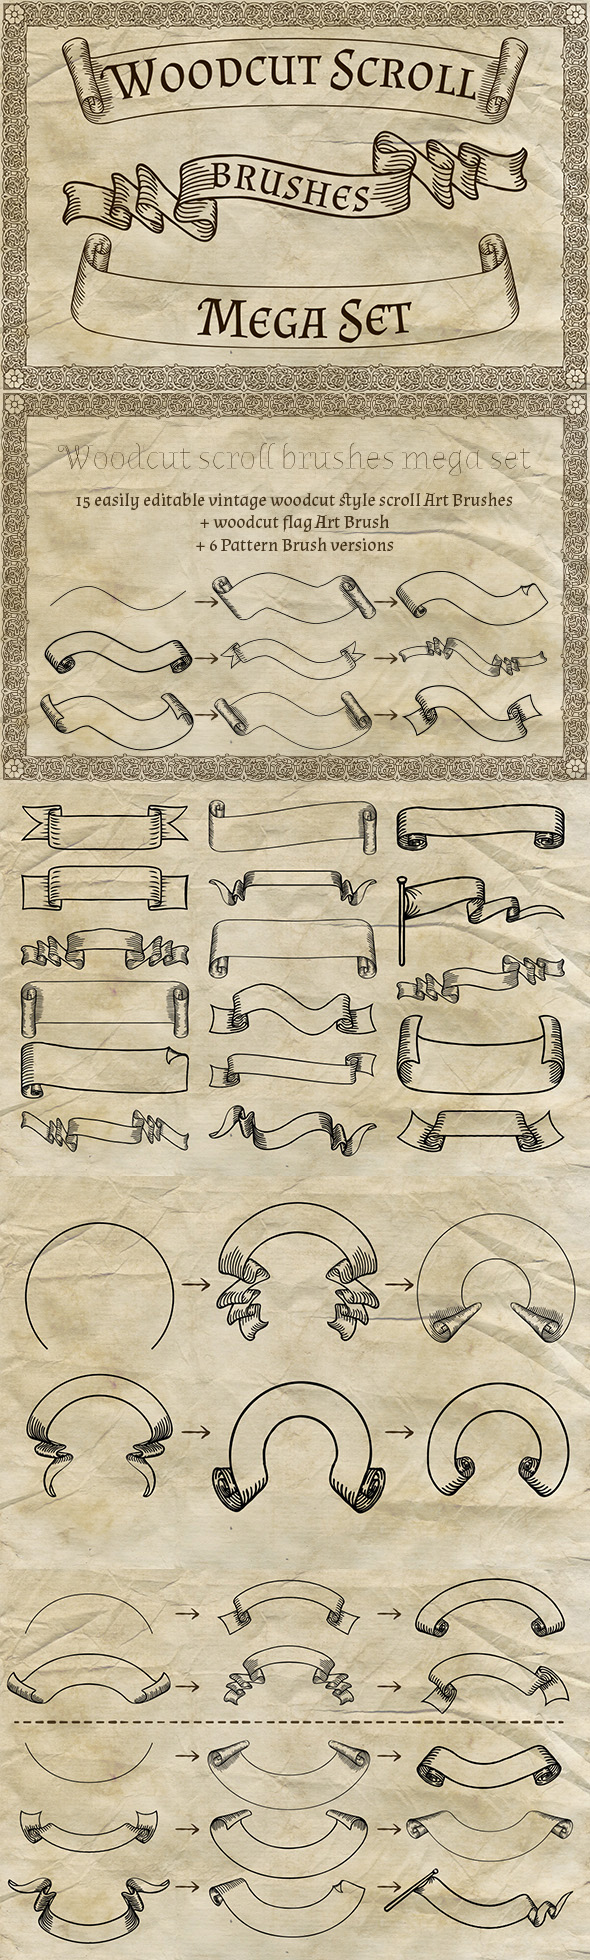 Woodcut Scroll Brushes Mega Set - Brushes Illustrator